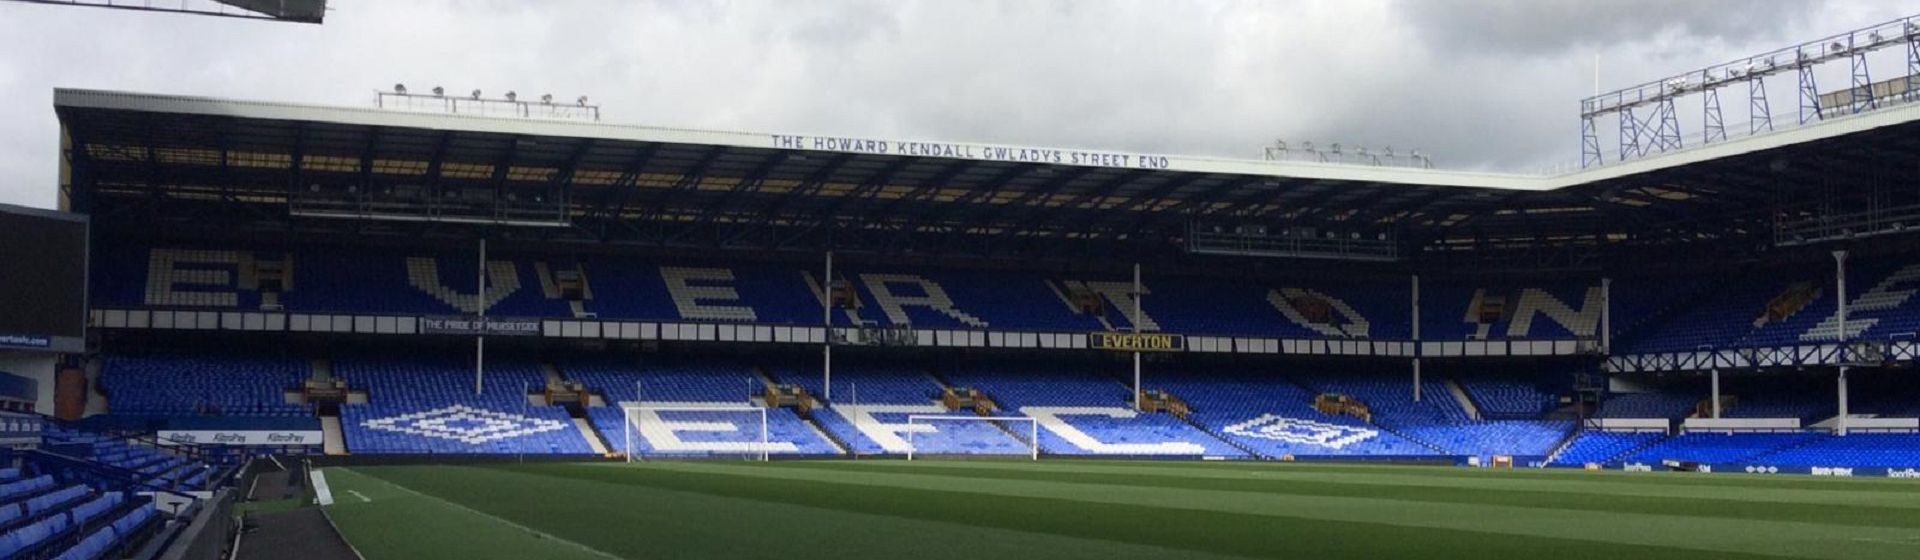 Goodison Park - venue for Welcome through Football 2nd meeting